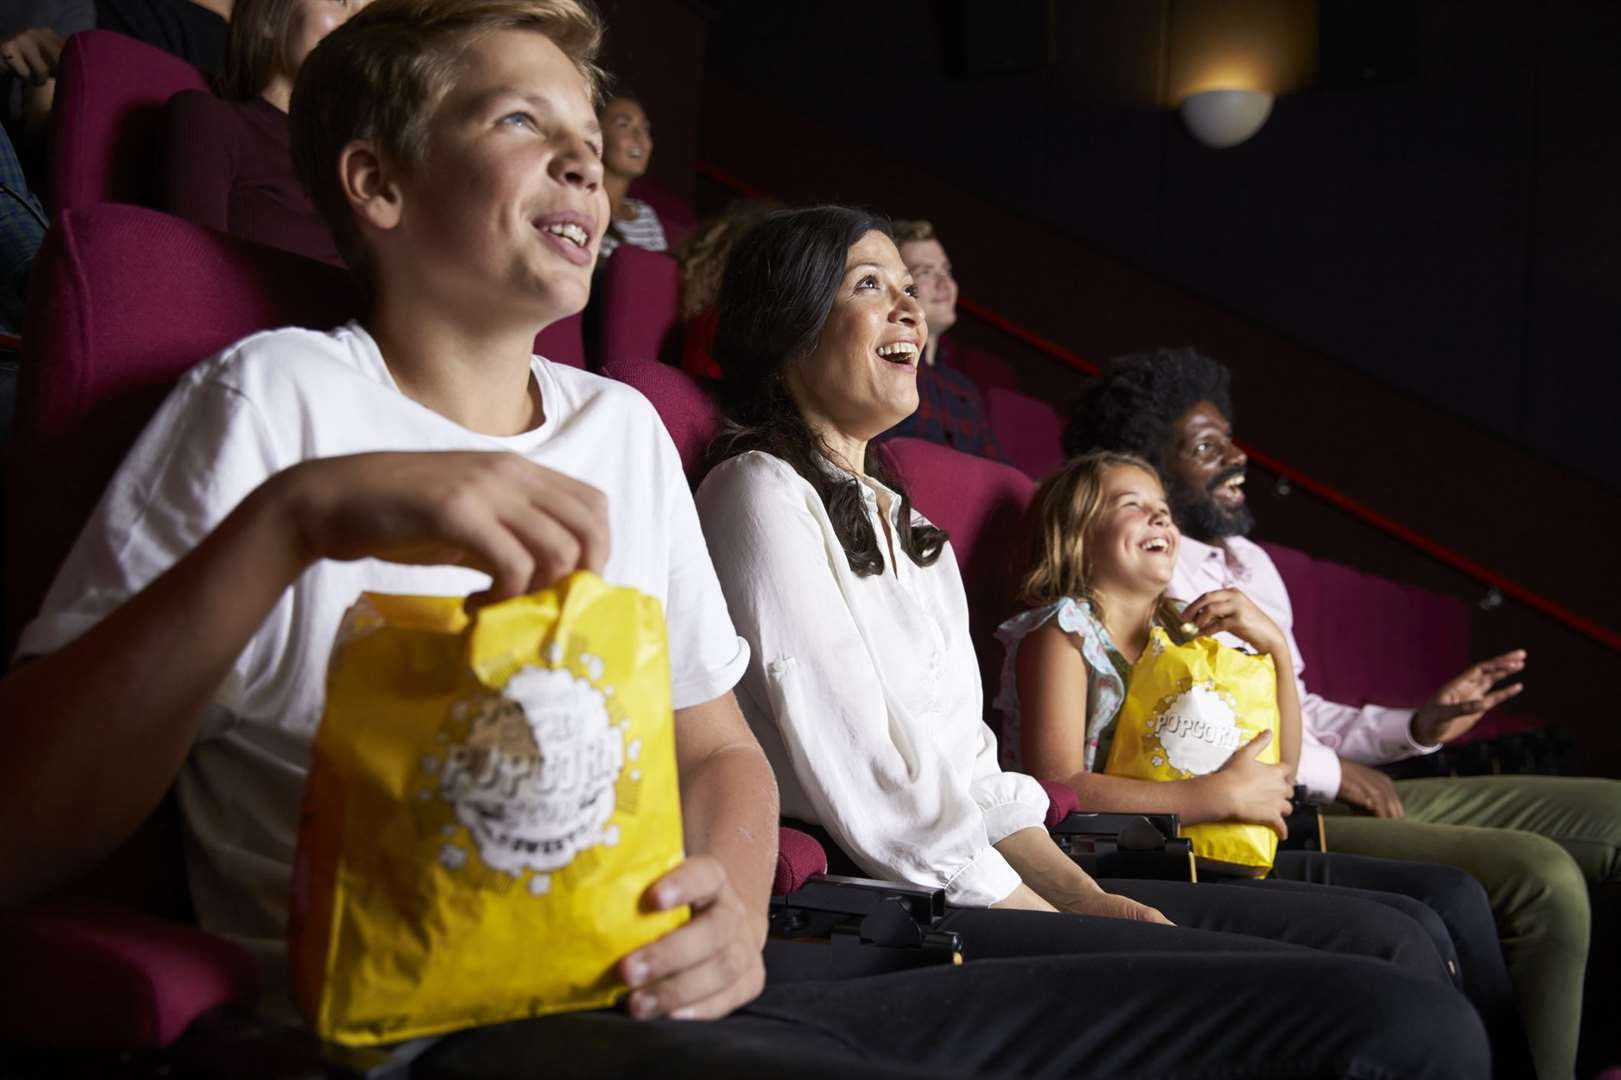 The cinema experience will be quite different to what we're all used to